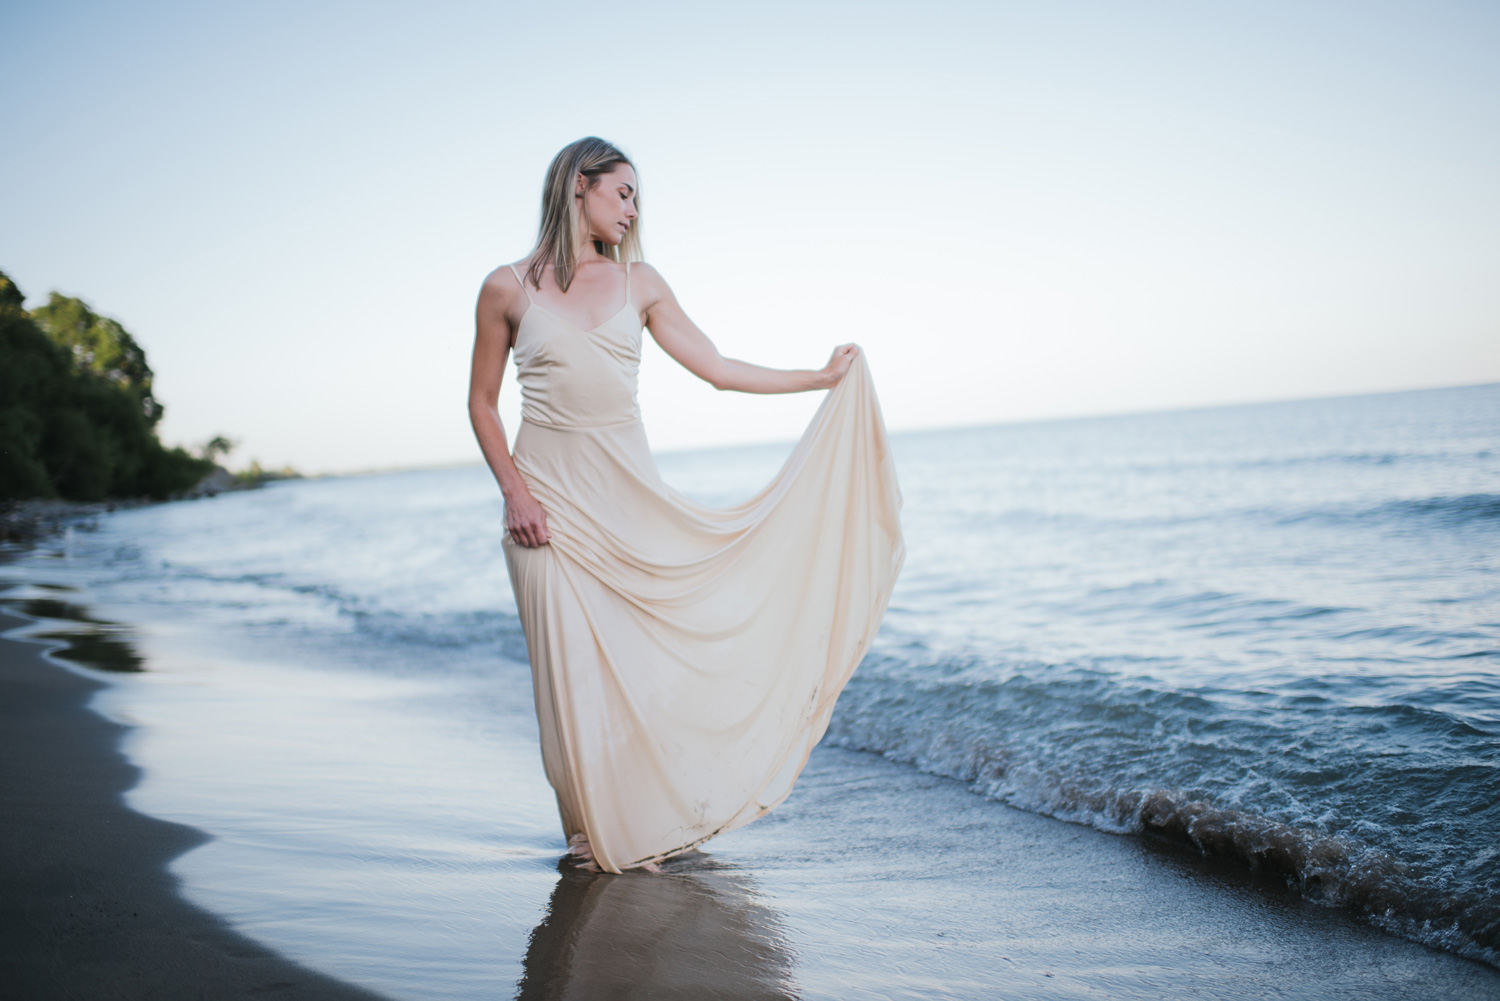 Boho Beach Mini Sessions - Jessica Lee Photography